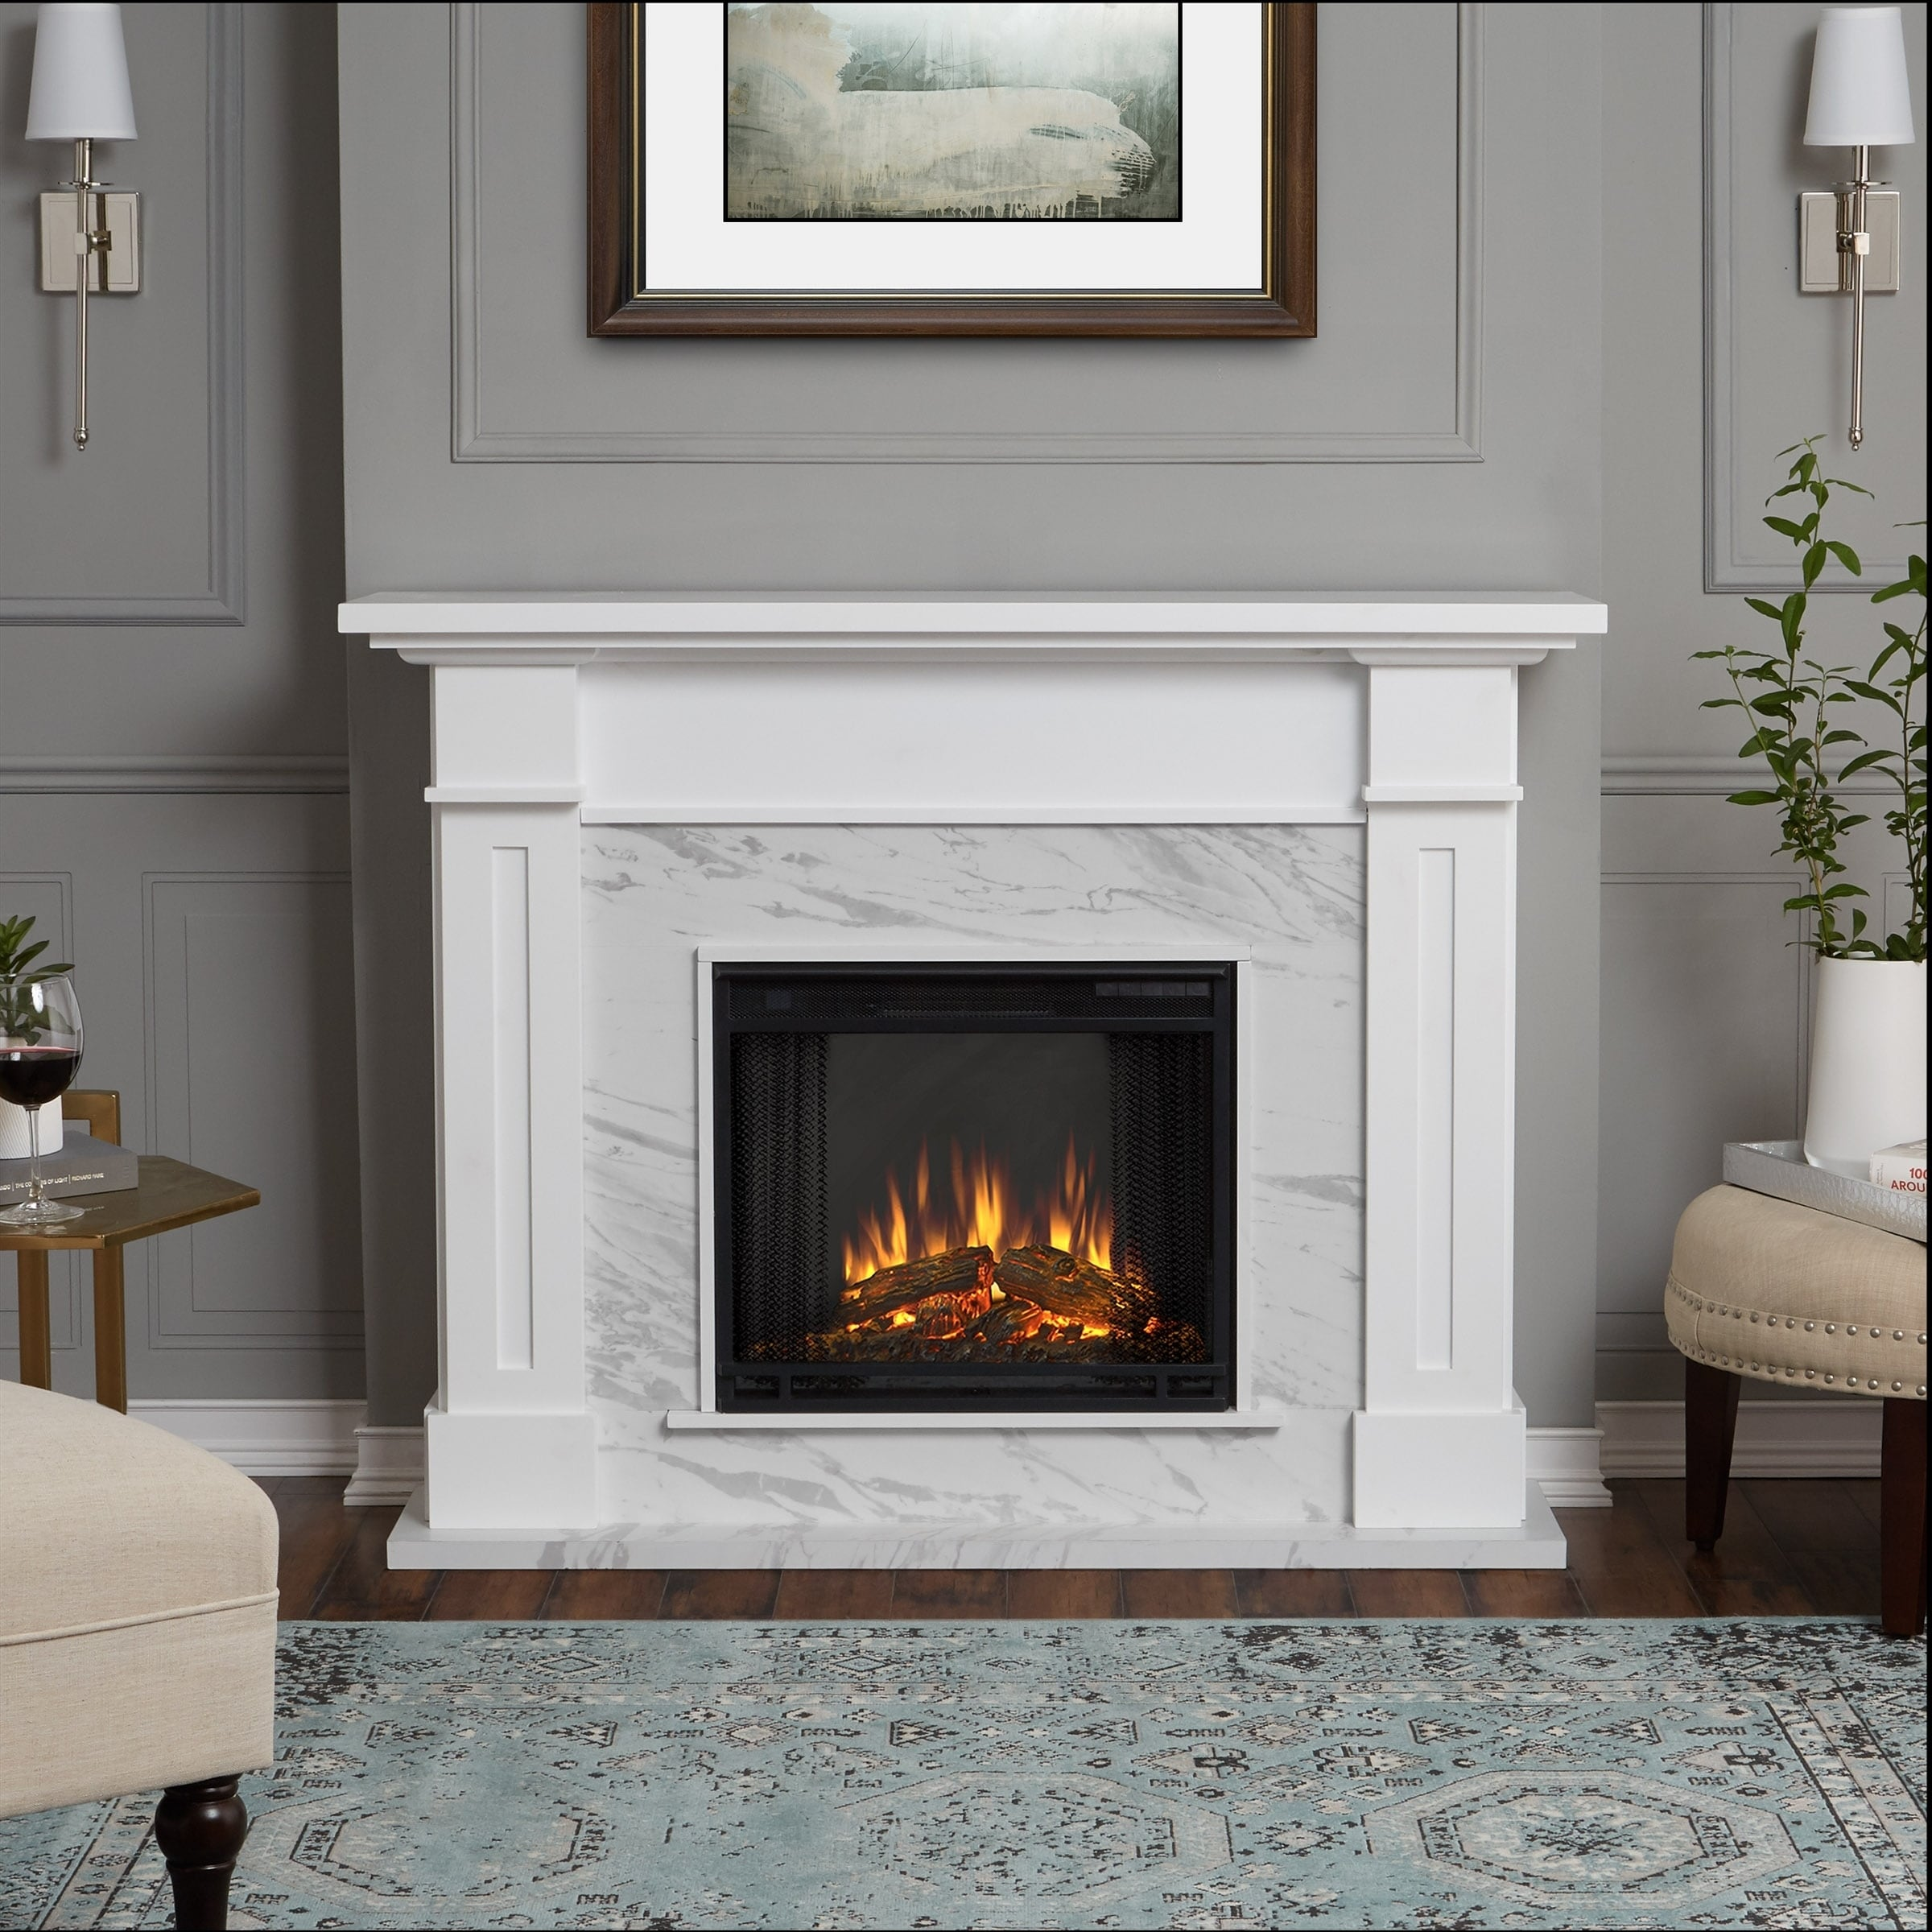 Usa Electric Fireplace Marble Manual Guide Wiring Diagram Theremincircuit Basiccircuit Circuit Seekiccom Buy Fireplaces Online At Overstock Com Our Best Decorative Rh Faux